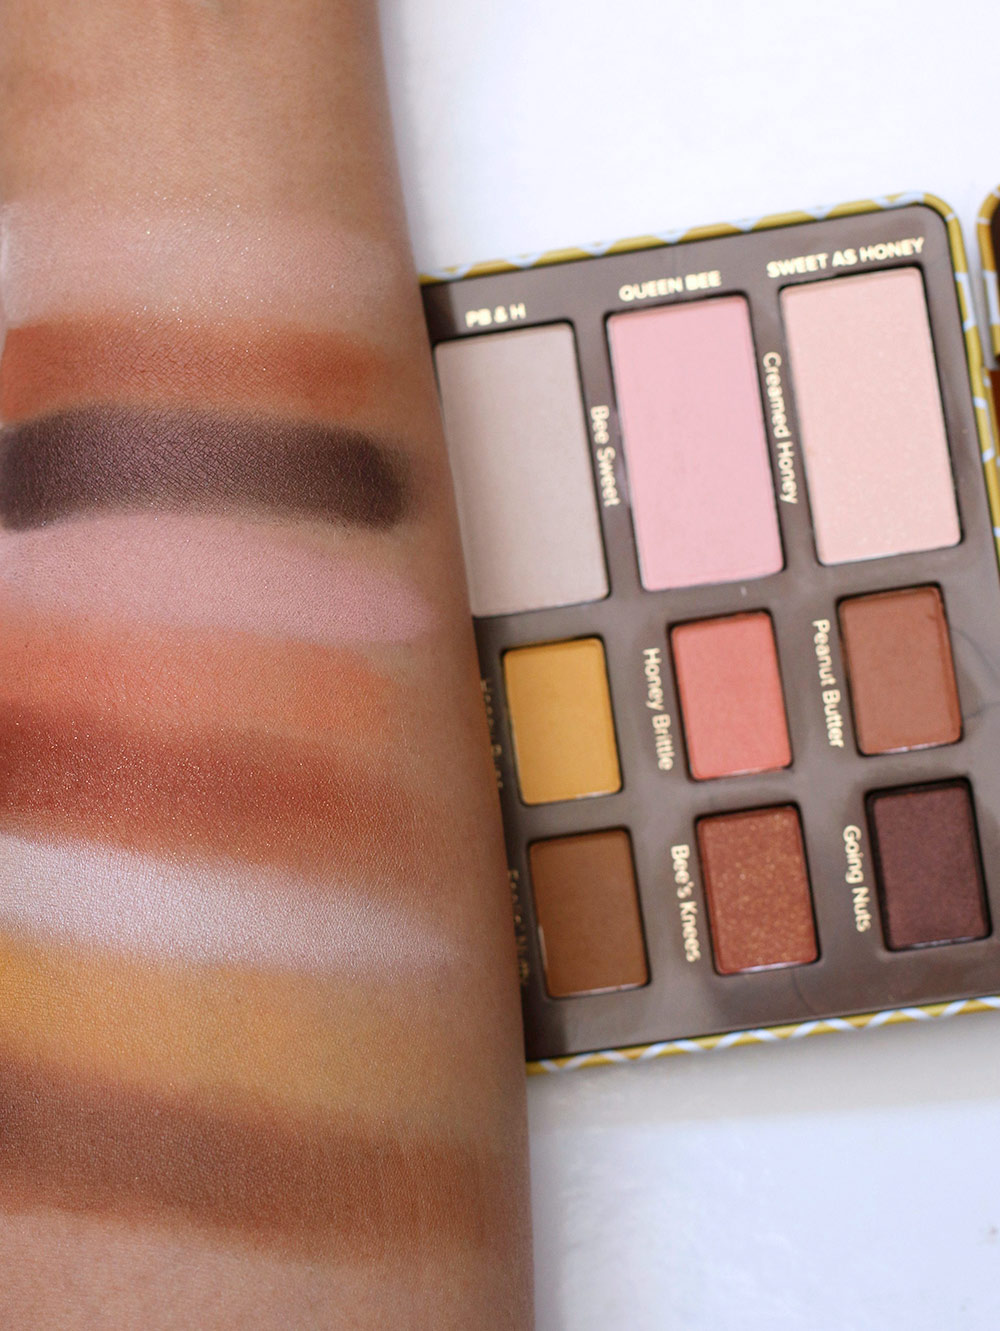 too faced peanut butter honey palette swatches